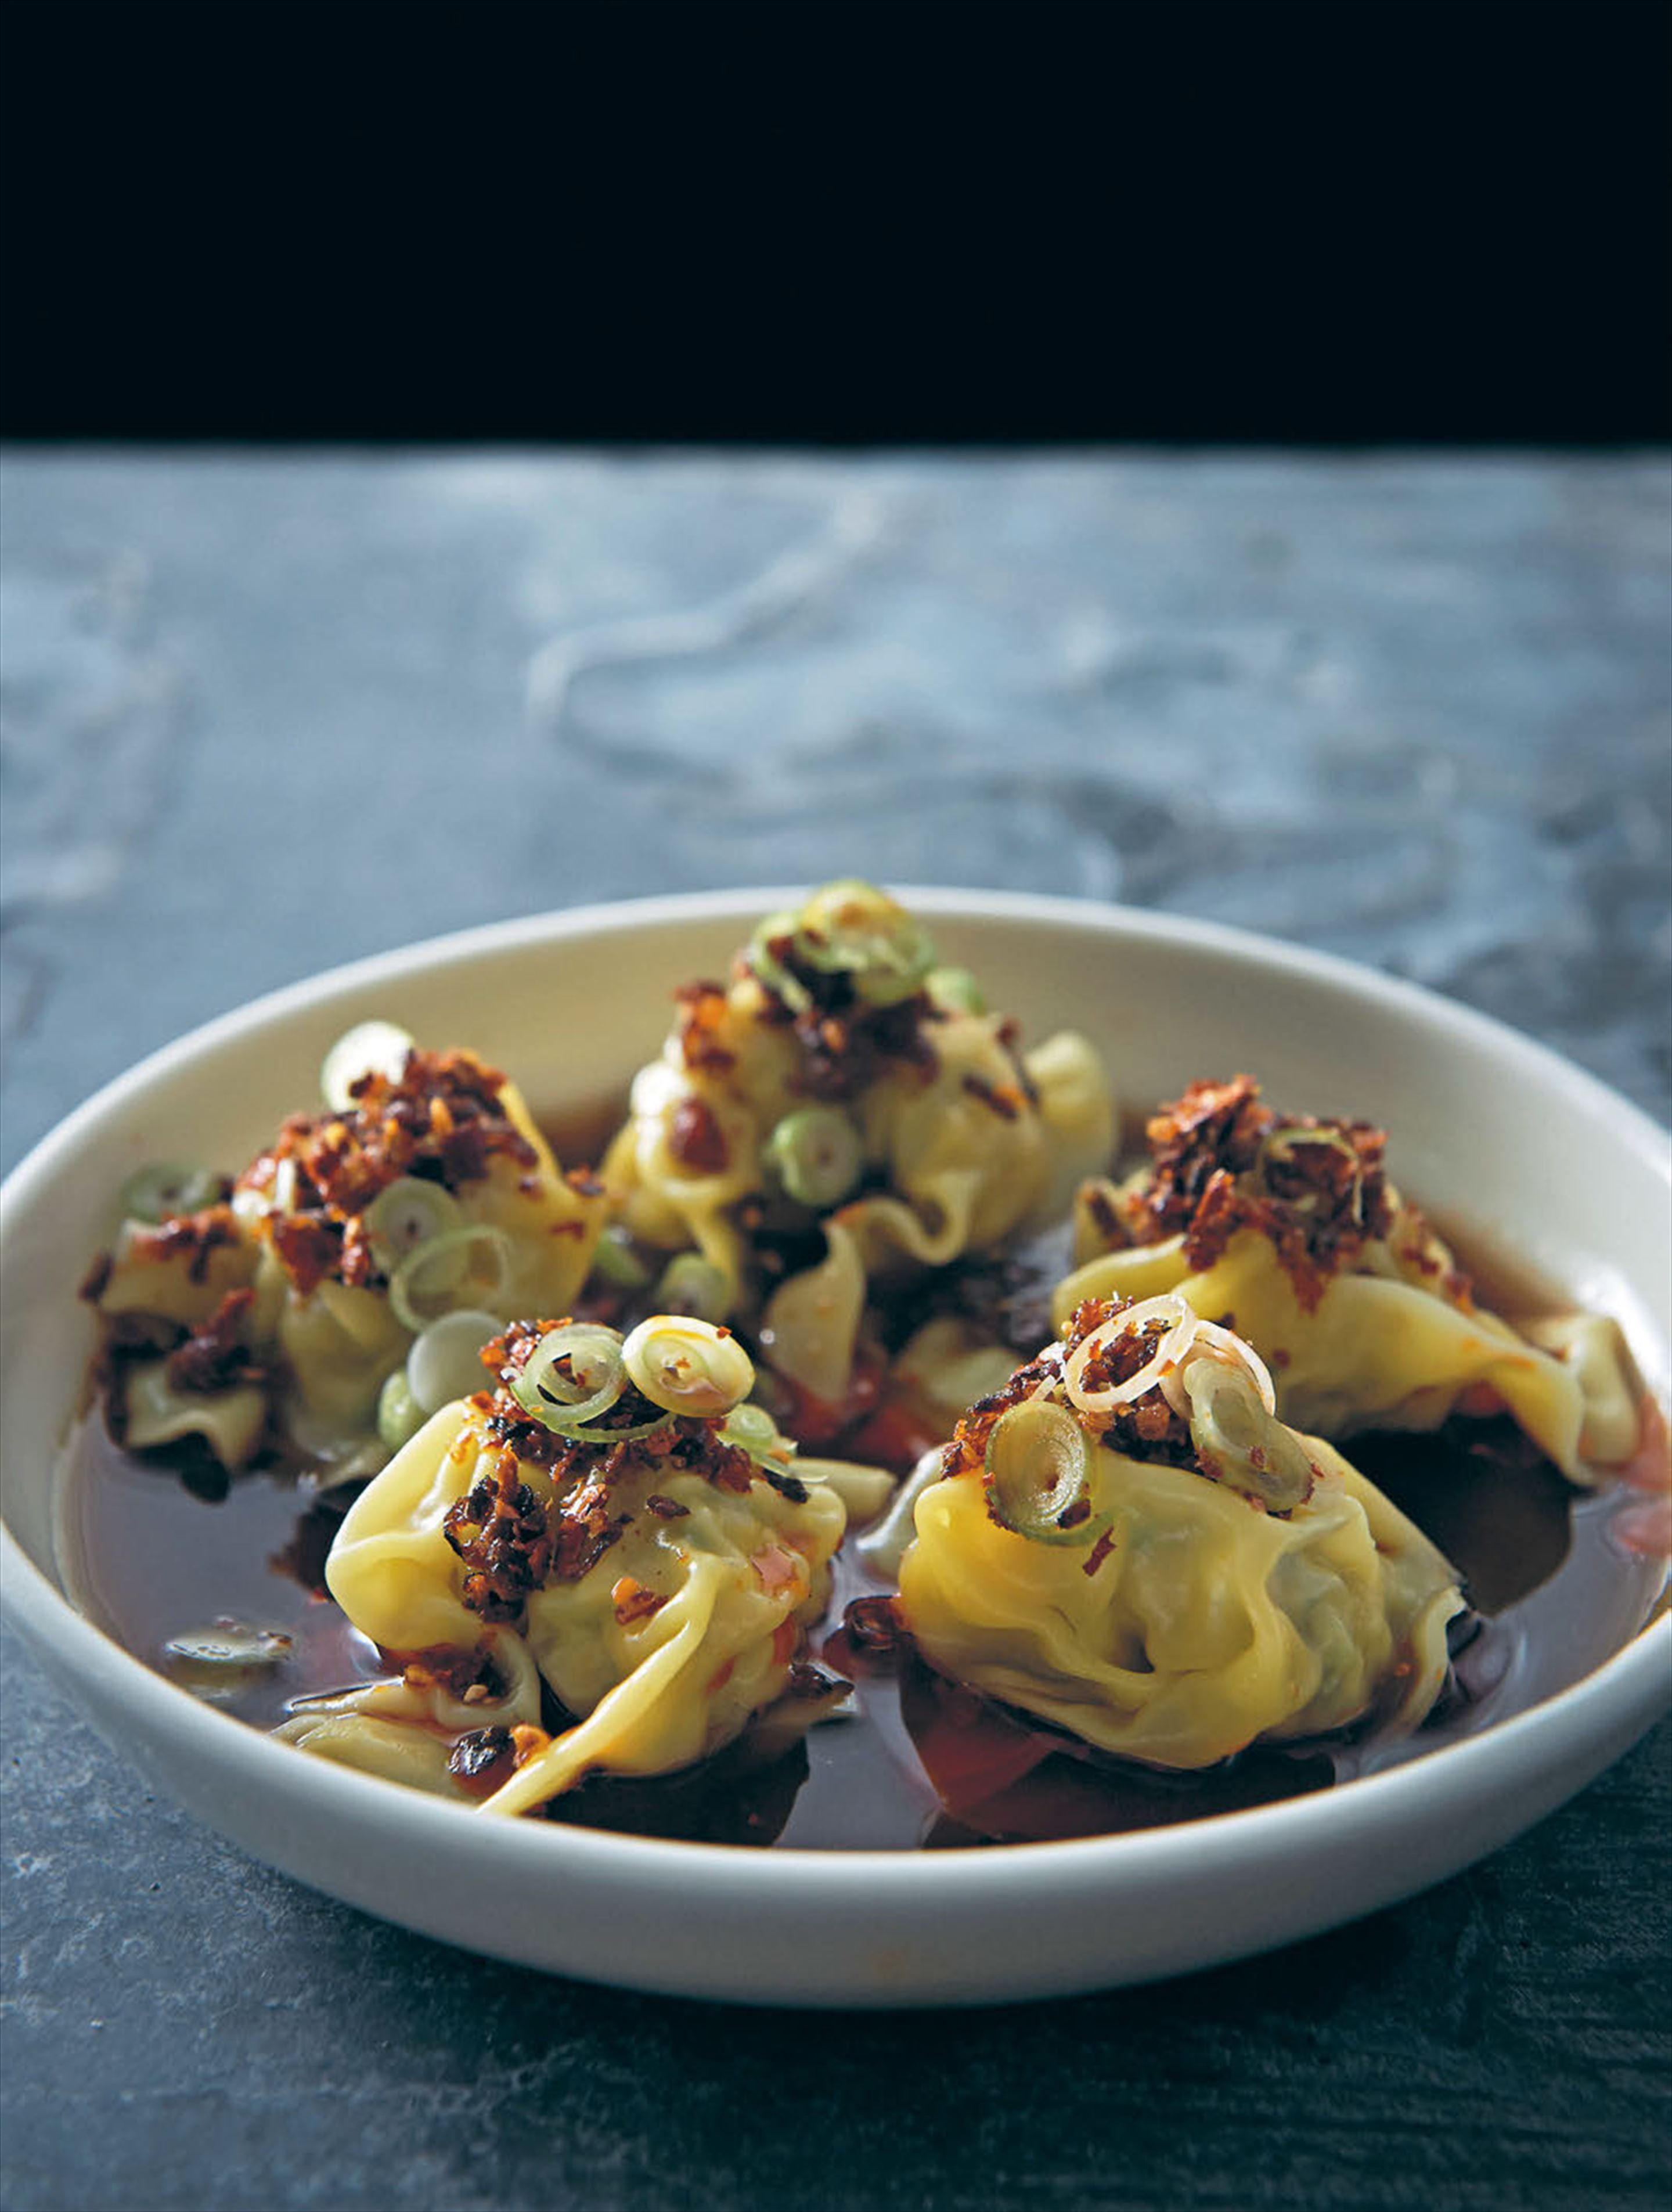 Prawn and chicken dumplings with spiced vinegar